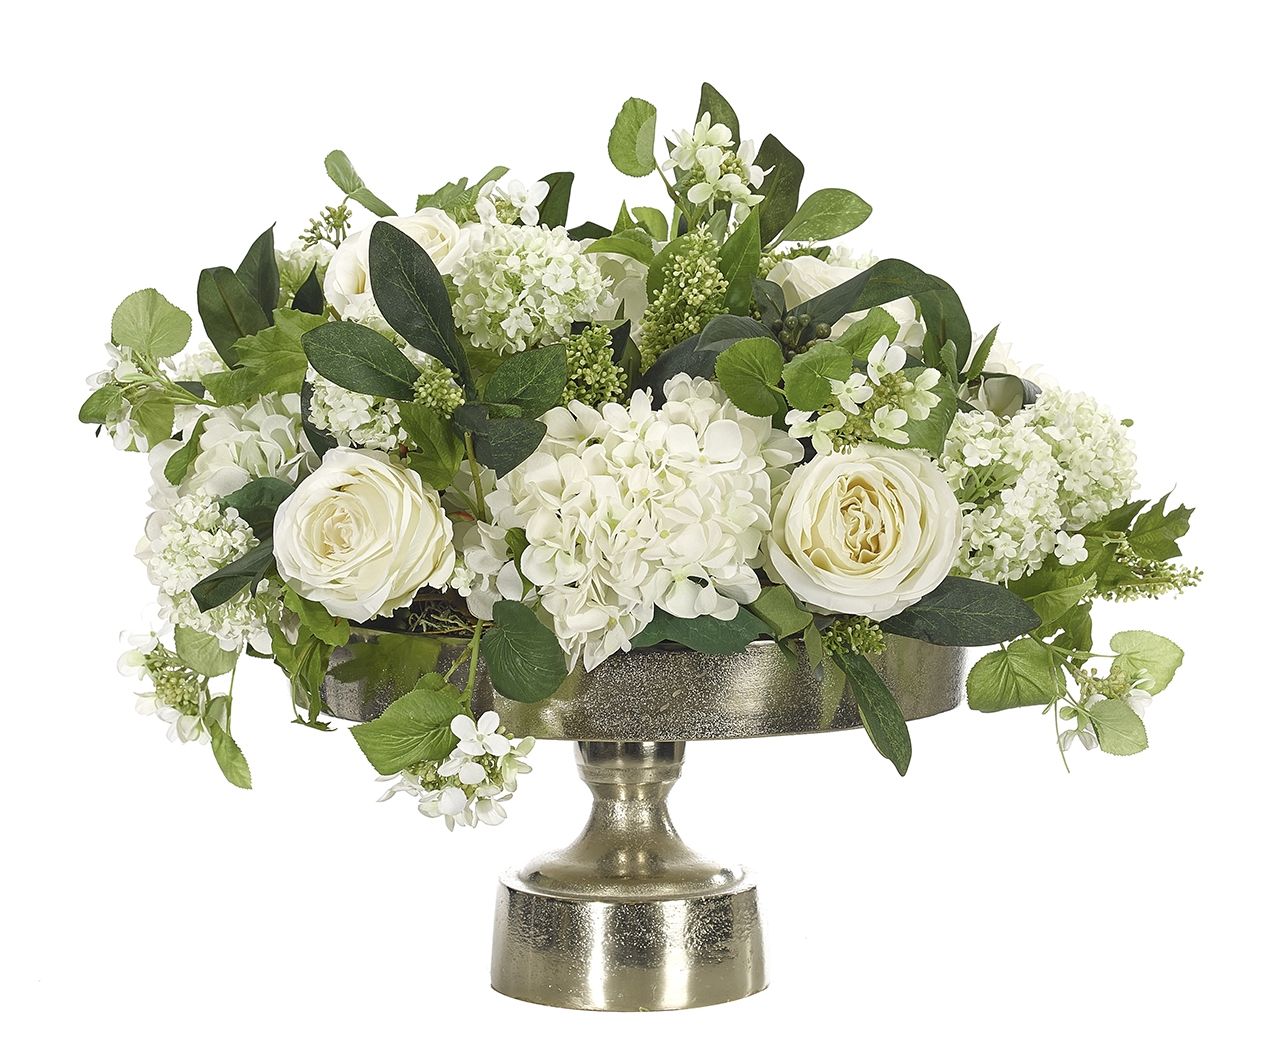 Rose Hydrangea, Cream Green, Silver Tray